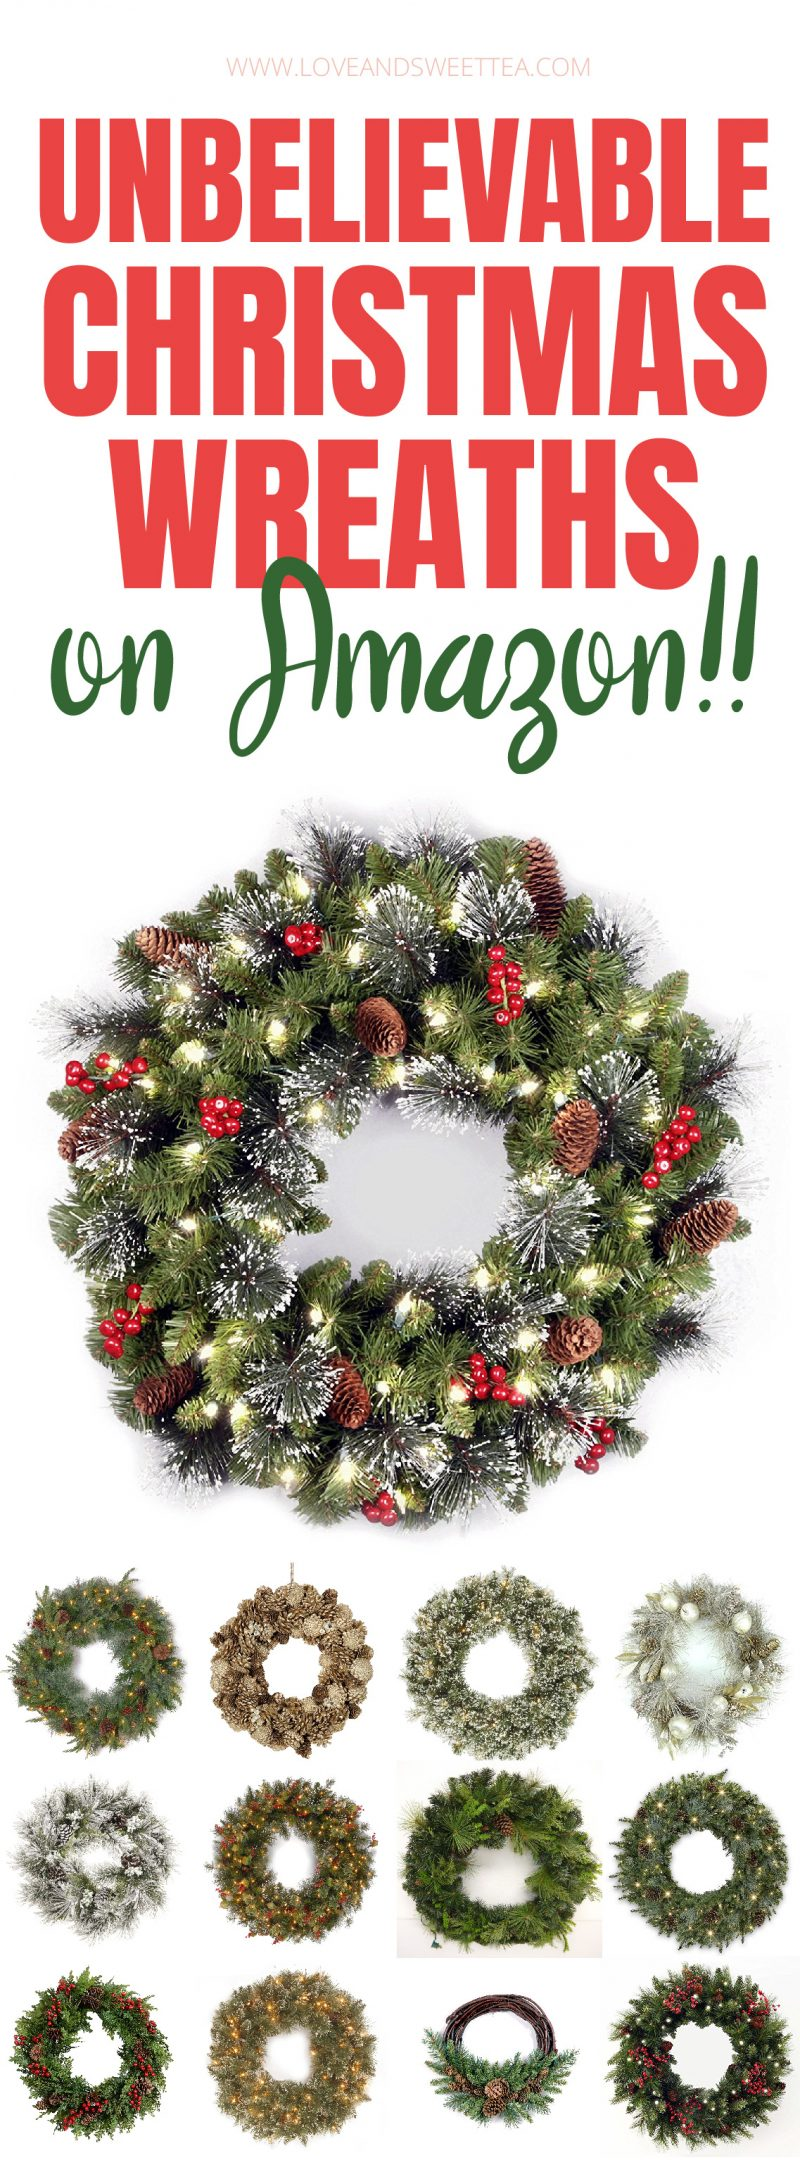 I'm going to get one of these Christmas wreaths from Amazon for my front door this year! They're gorgeous wreath ideas and save tons of time vs DIY Christmas wreaths! There are some gorgeous rustic, elegant and natural options here.